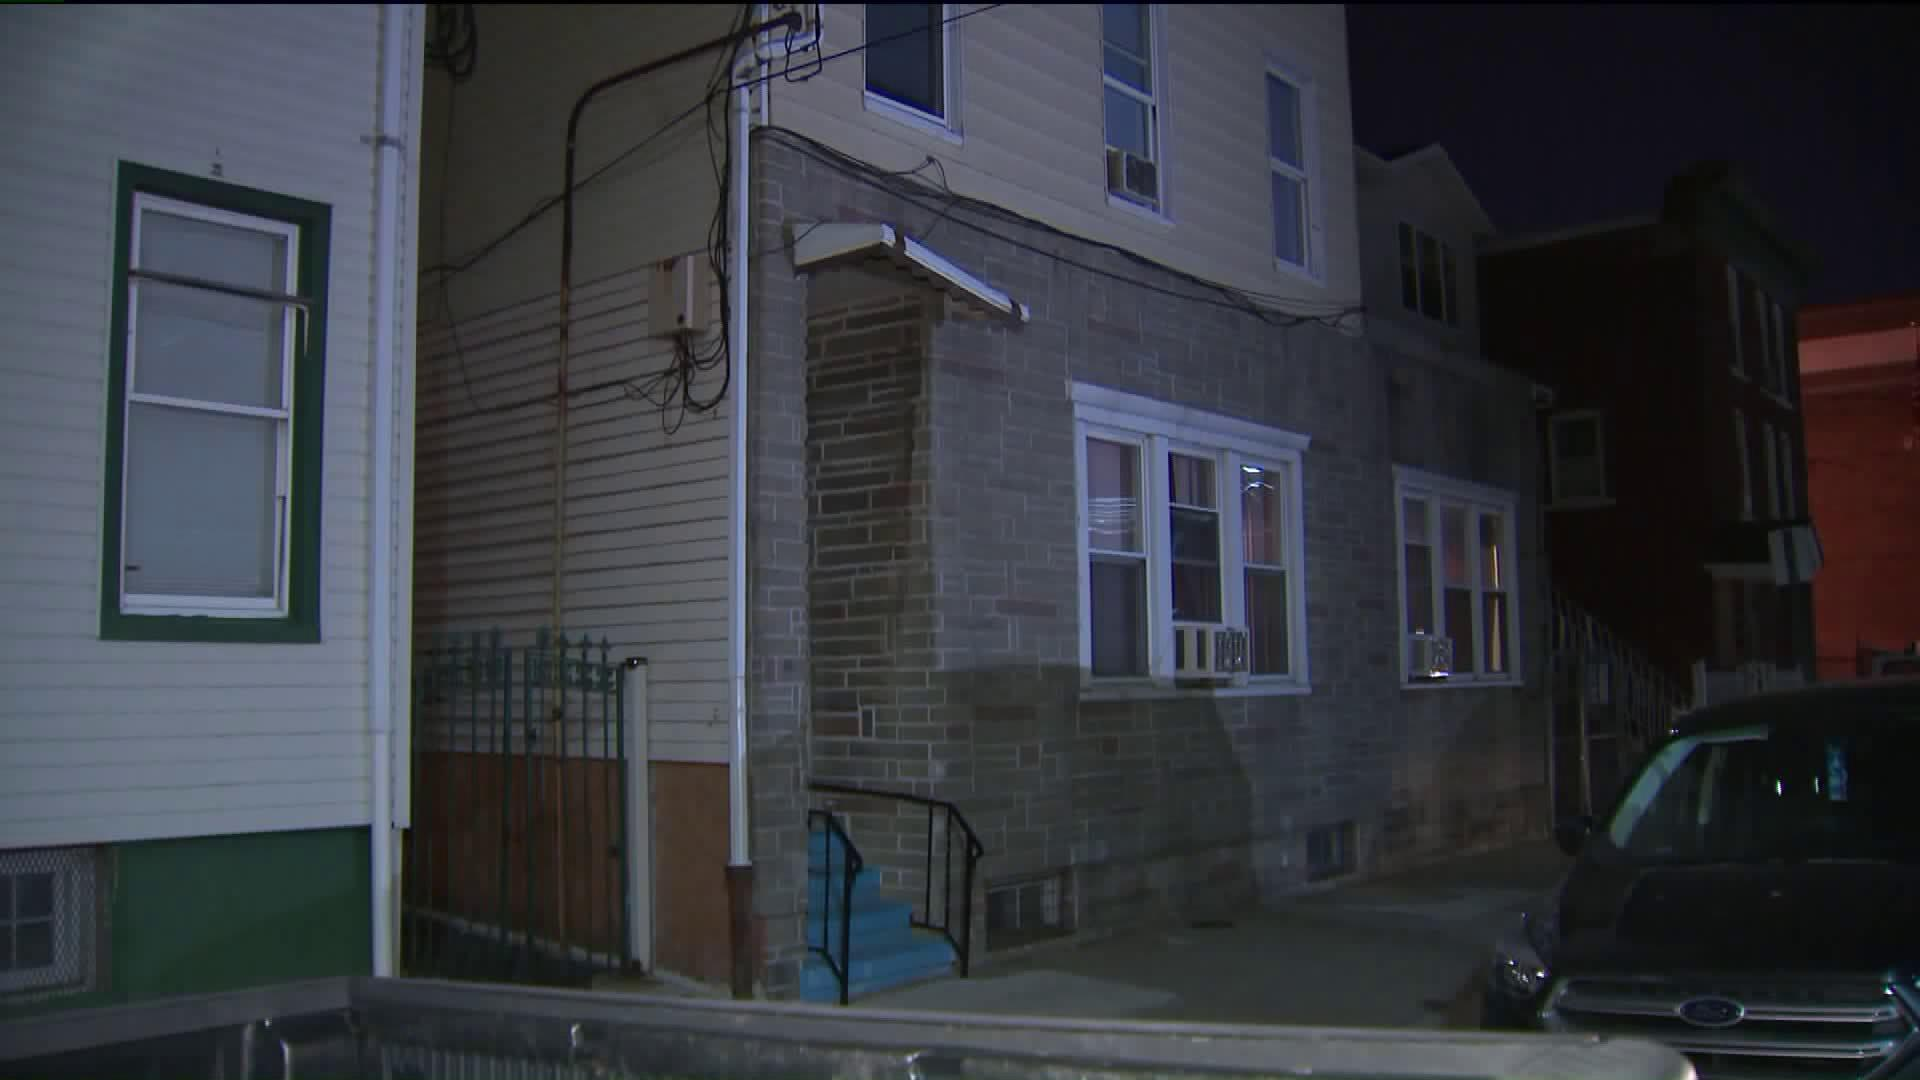 Awning Likely Saved Toddler's Life in Fall from Third-Floor Window